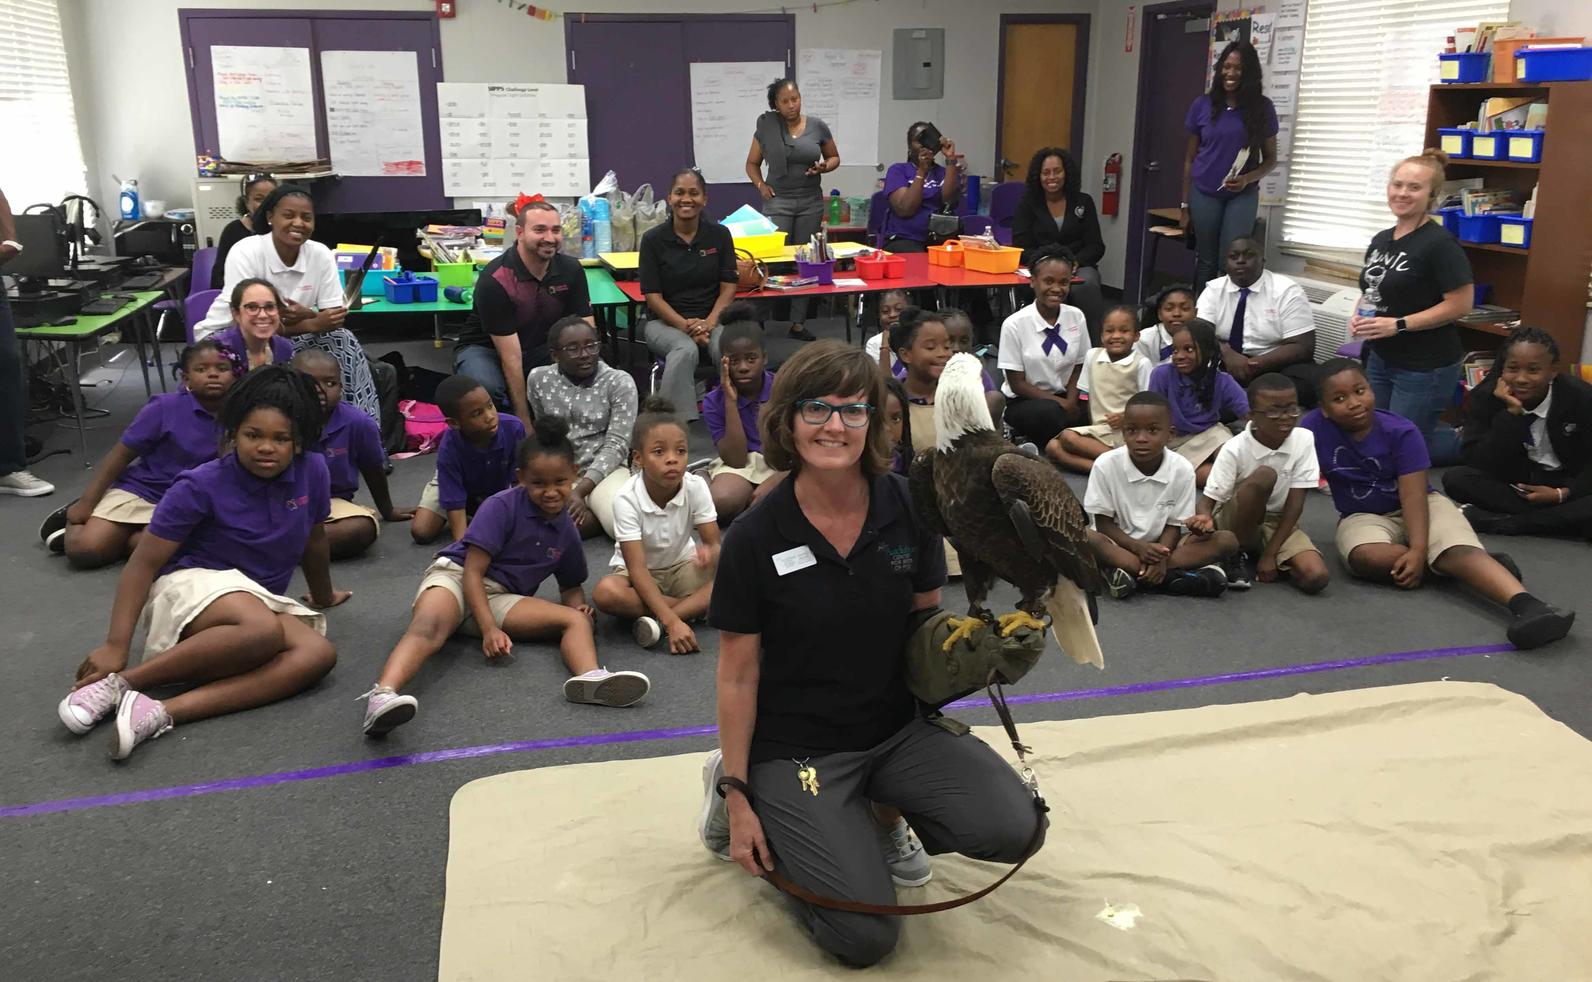 Shawnlei Breeding with bald eagle in classroom